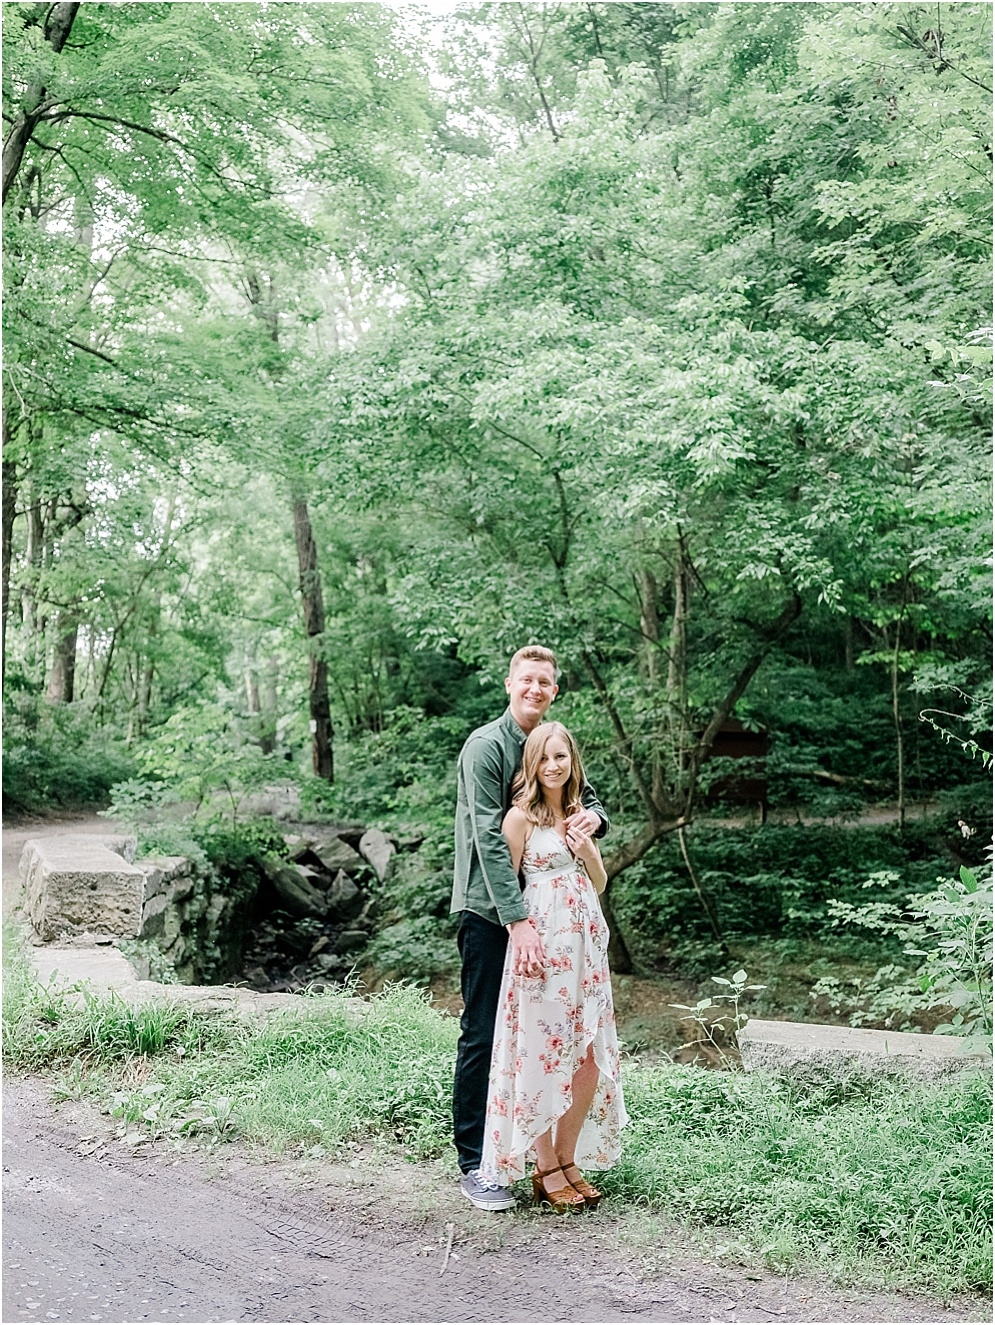 A hidden forest engagment session at Shenk's Ferry Wildflower Preserve in Lancaster, Pennsylvania.